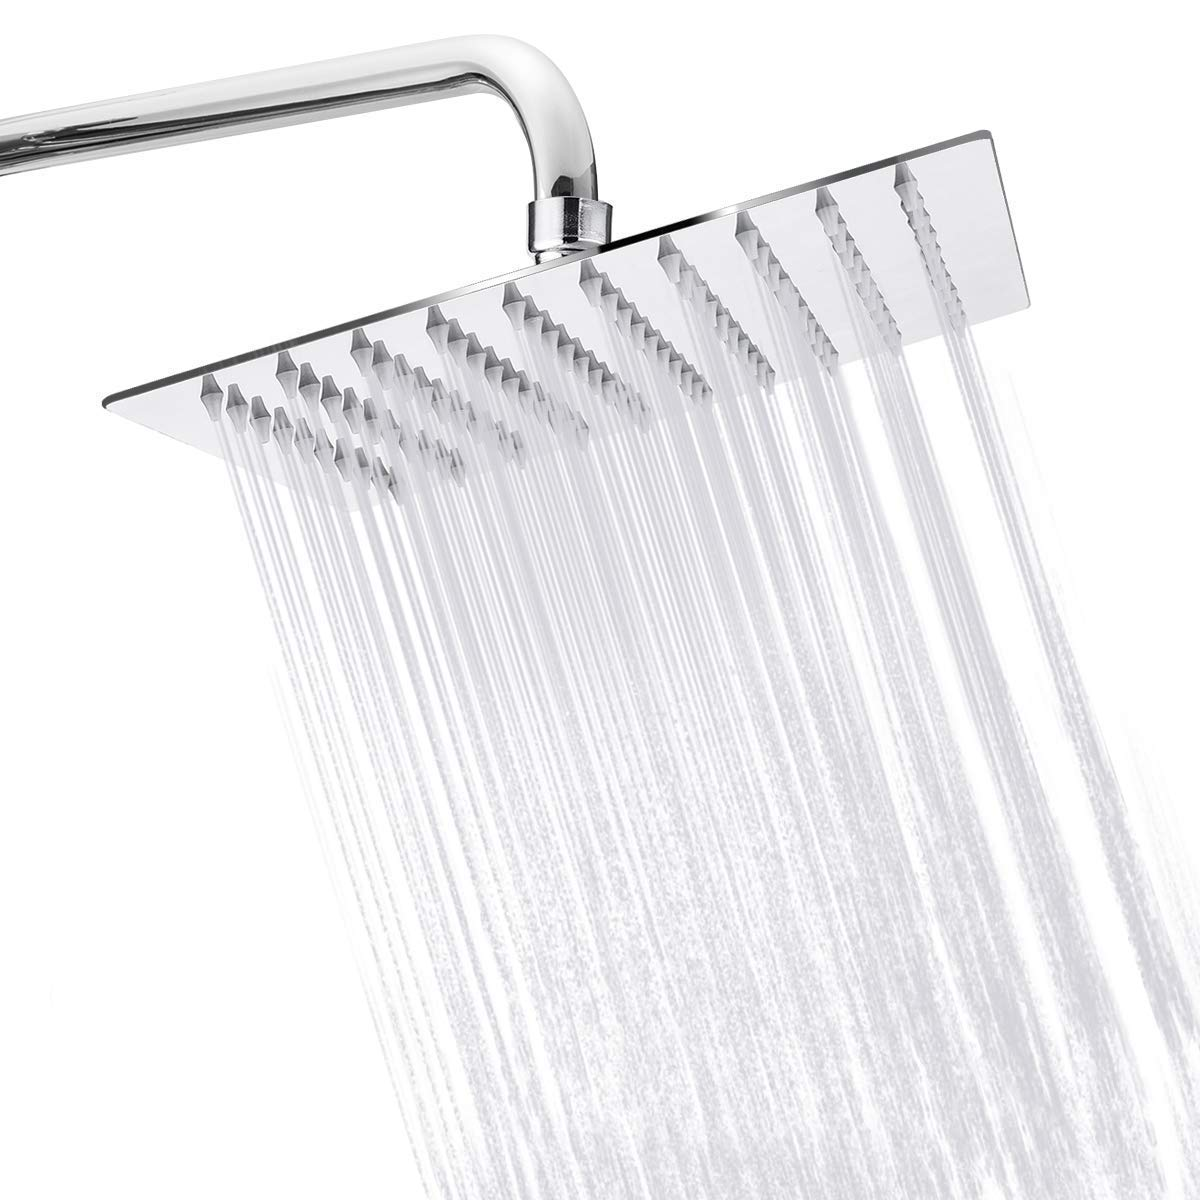 AquaIV High Pressure Rainfall Shower Head